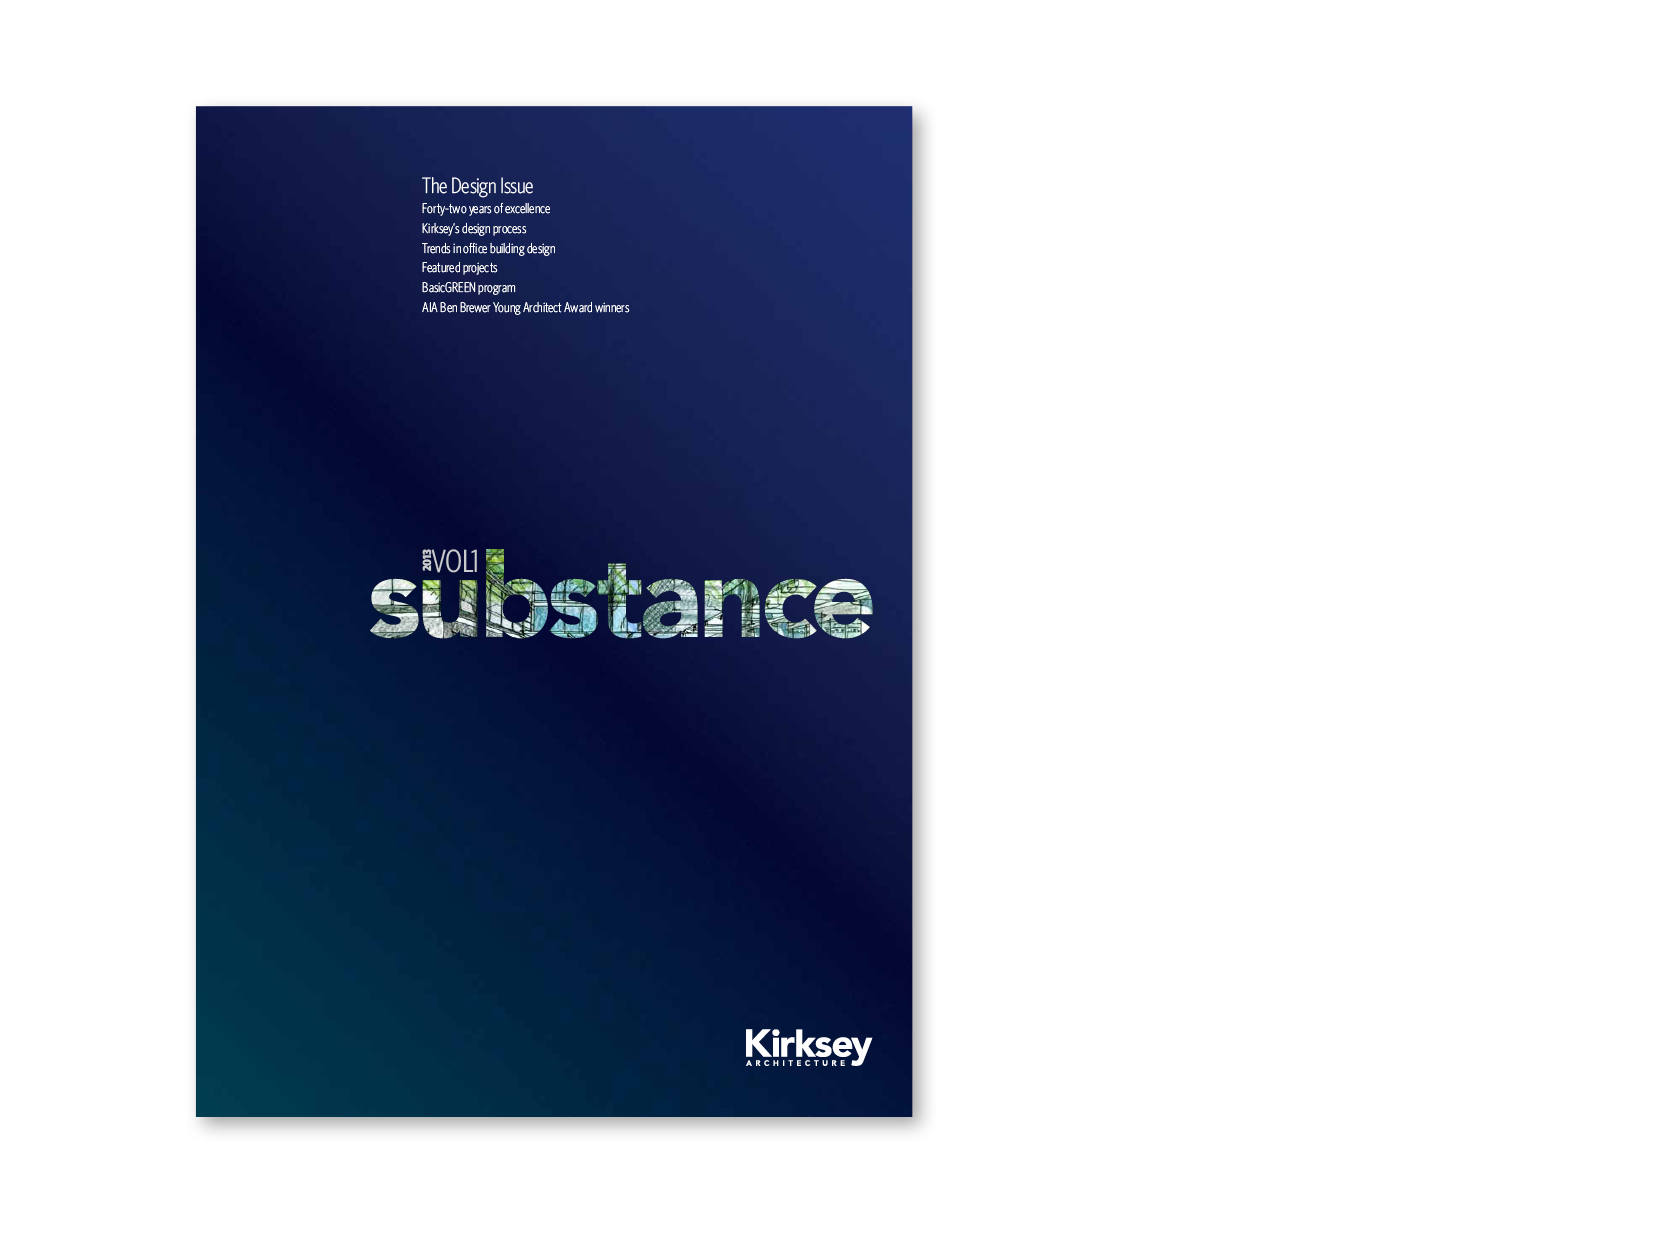 Preview of the resource library item for Substance Volume I